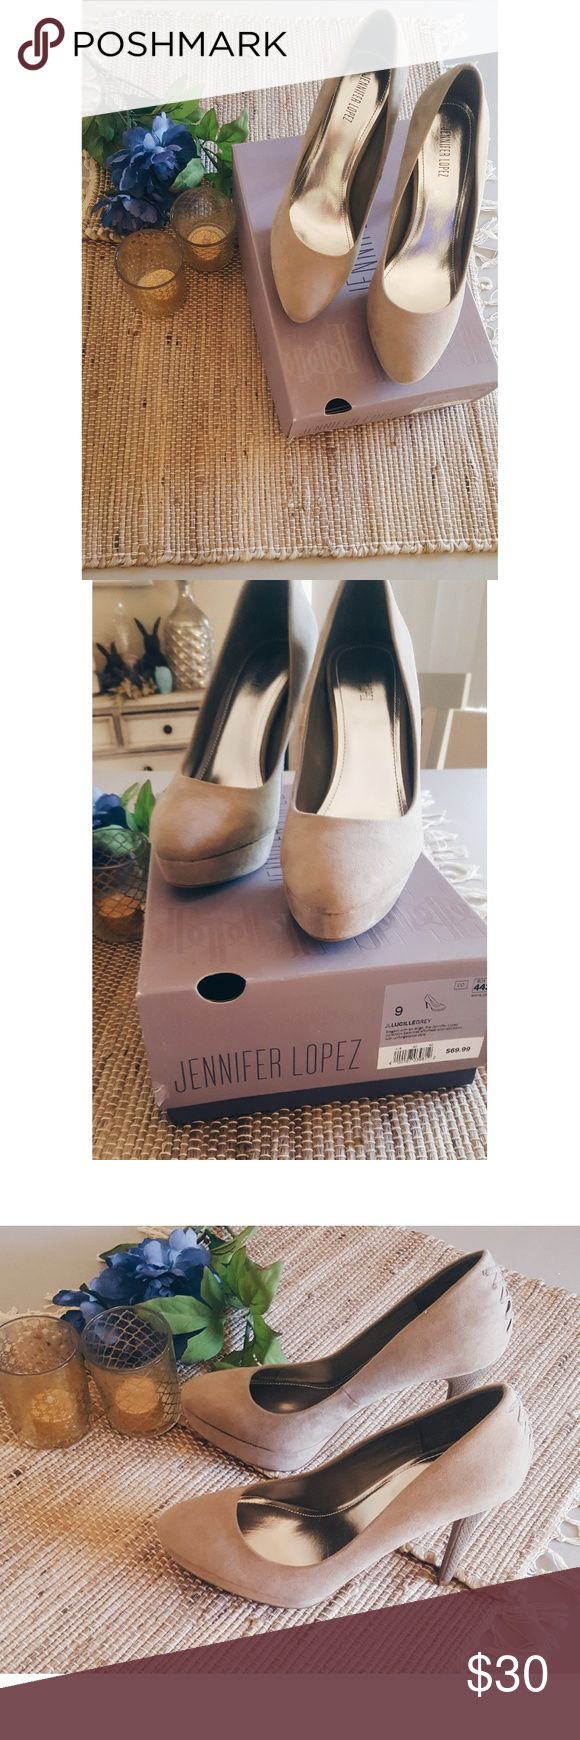 "NWB! Jennifer Lopez Heels New with Box, never been worn outside. Color listed as ""Lucille Grey"", very neutral and would match so many outfits. Love the corset detail on the back. 👠 Size-9. Heel Height- 4.5"". Platform Height-1"". Jennifer Lopez Shoes Heels"